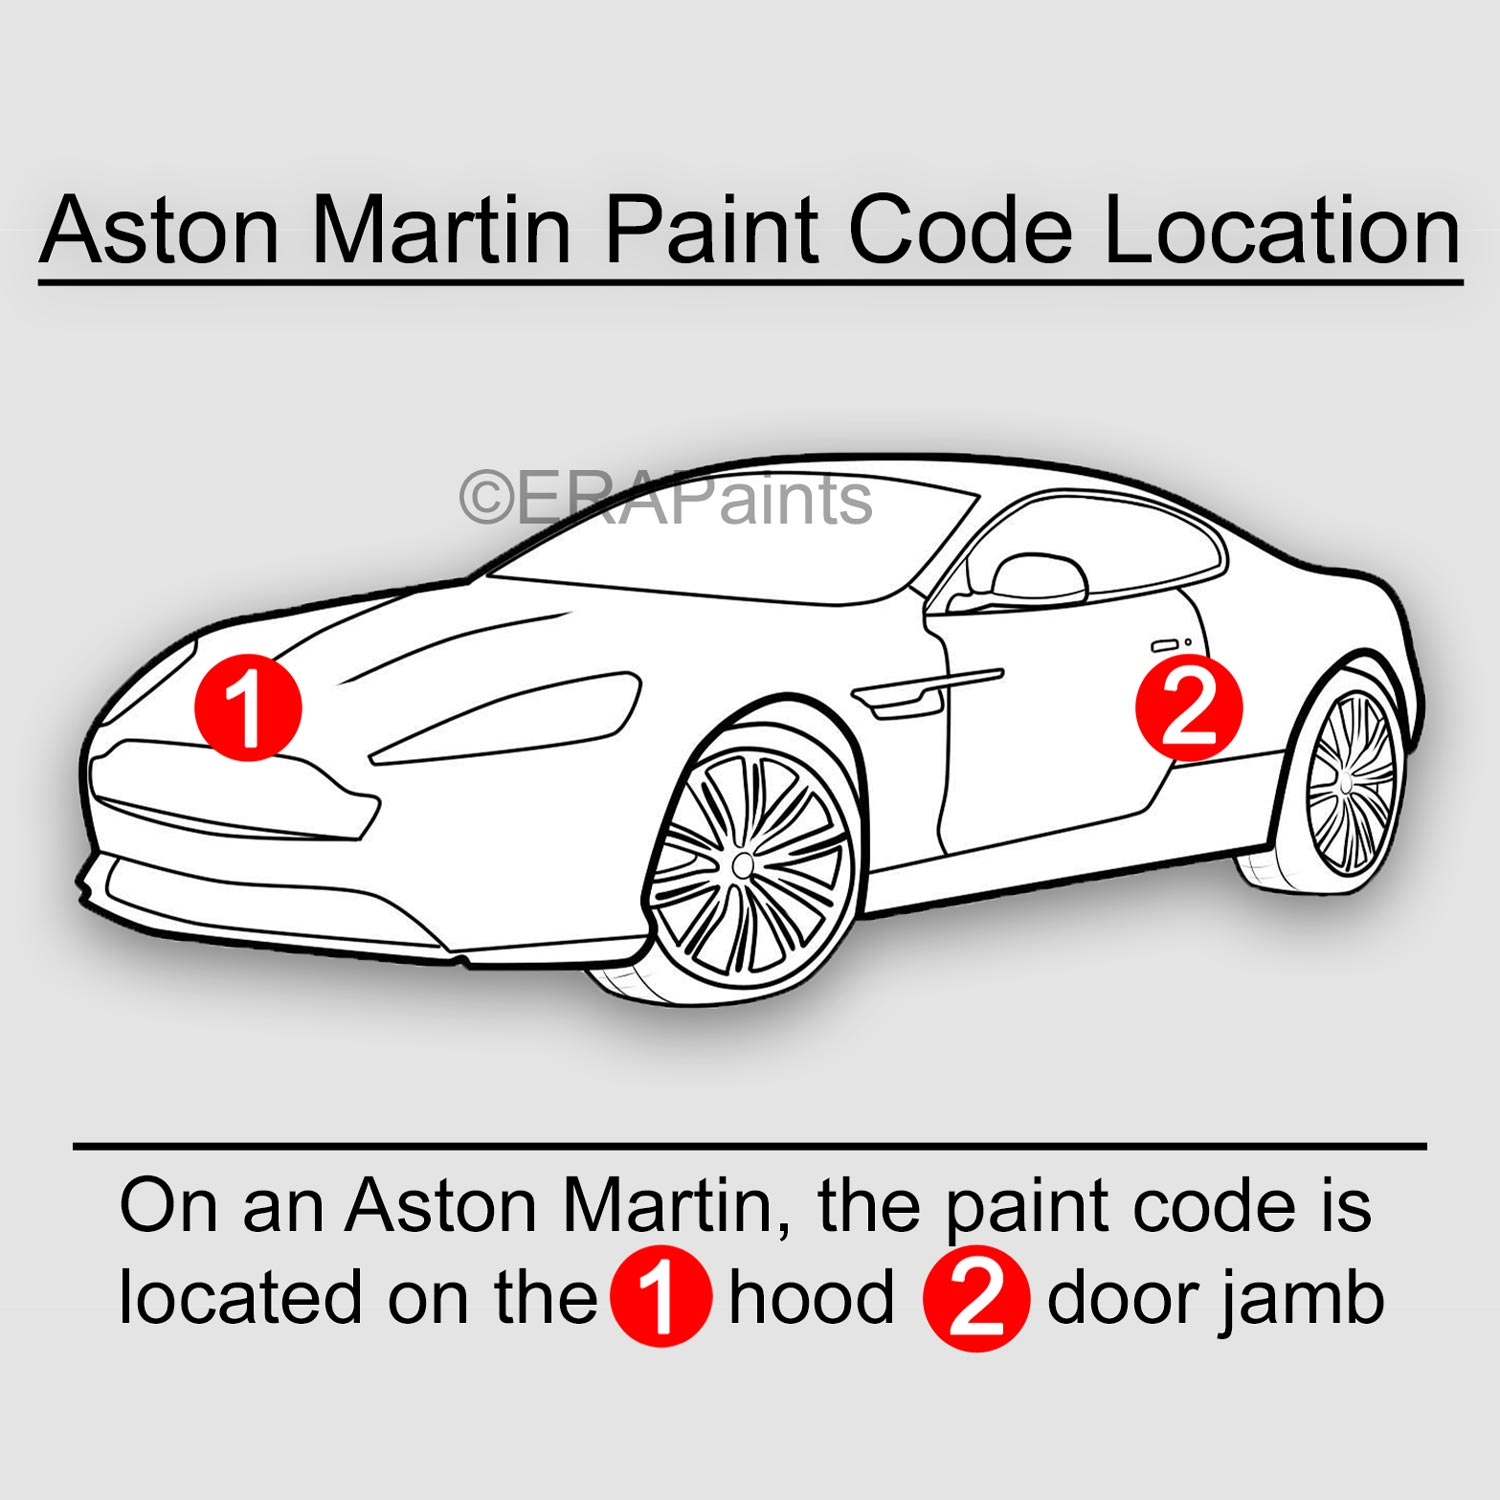 How To Find Your Aston Martin Paint Code Era Paints